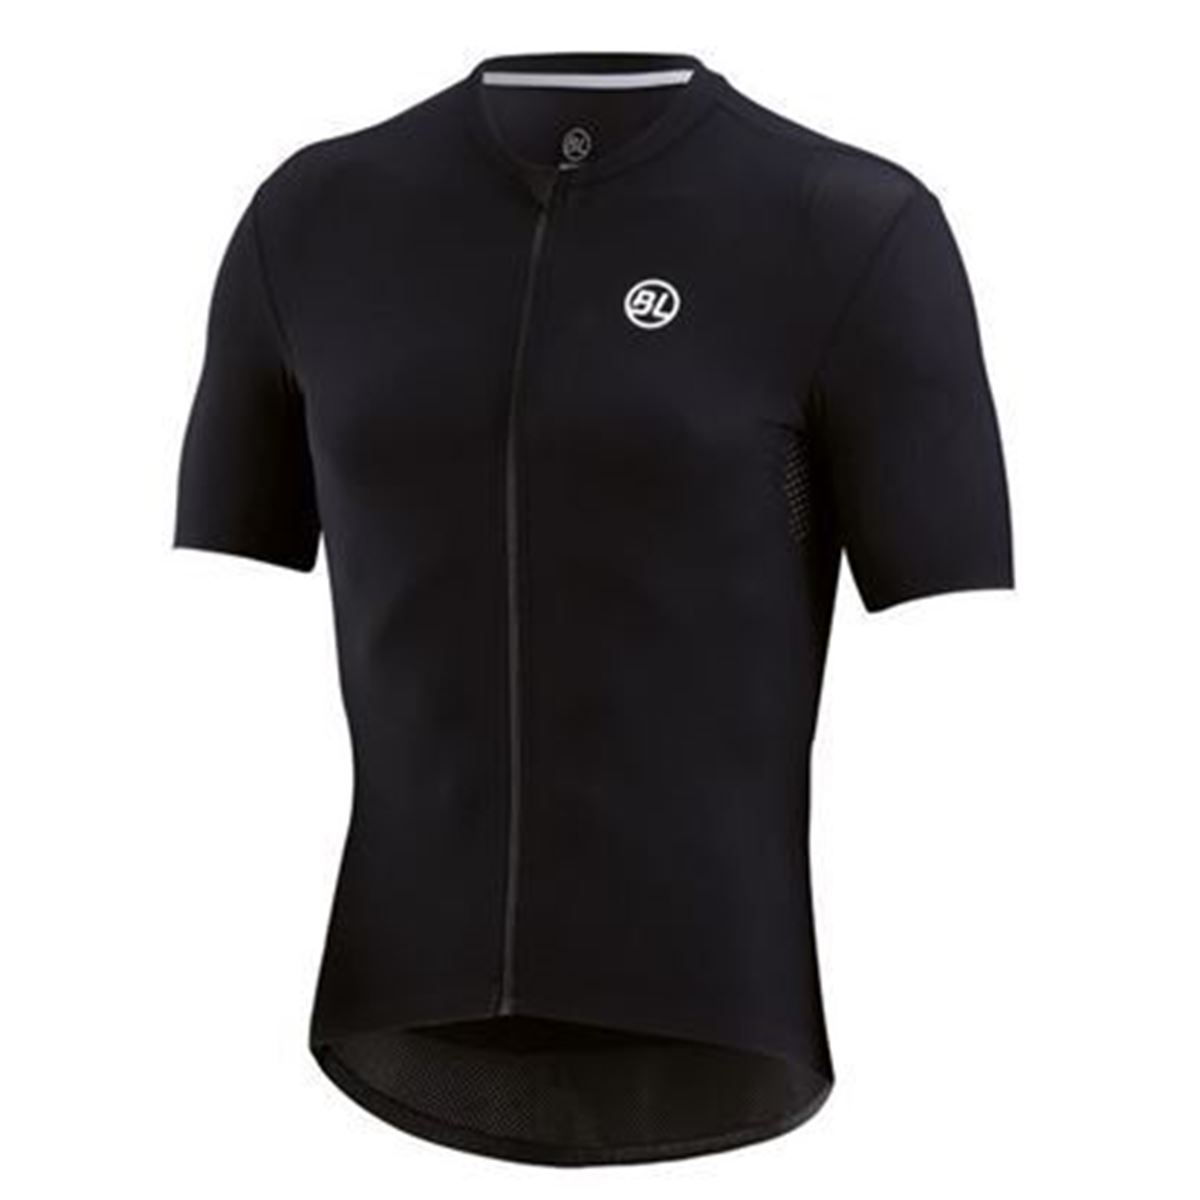 Picture for category Short Sleeve Jerseys